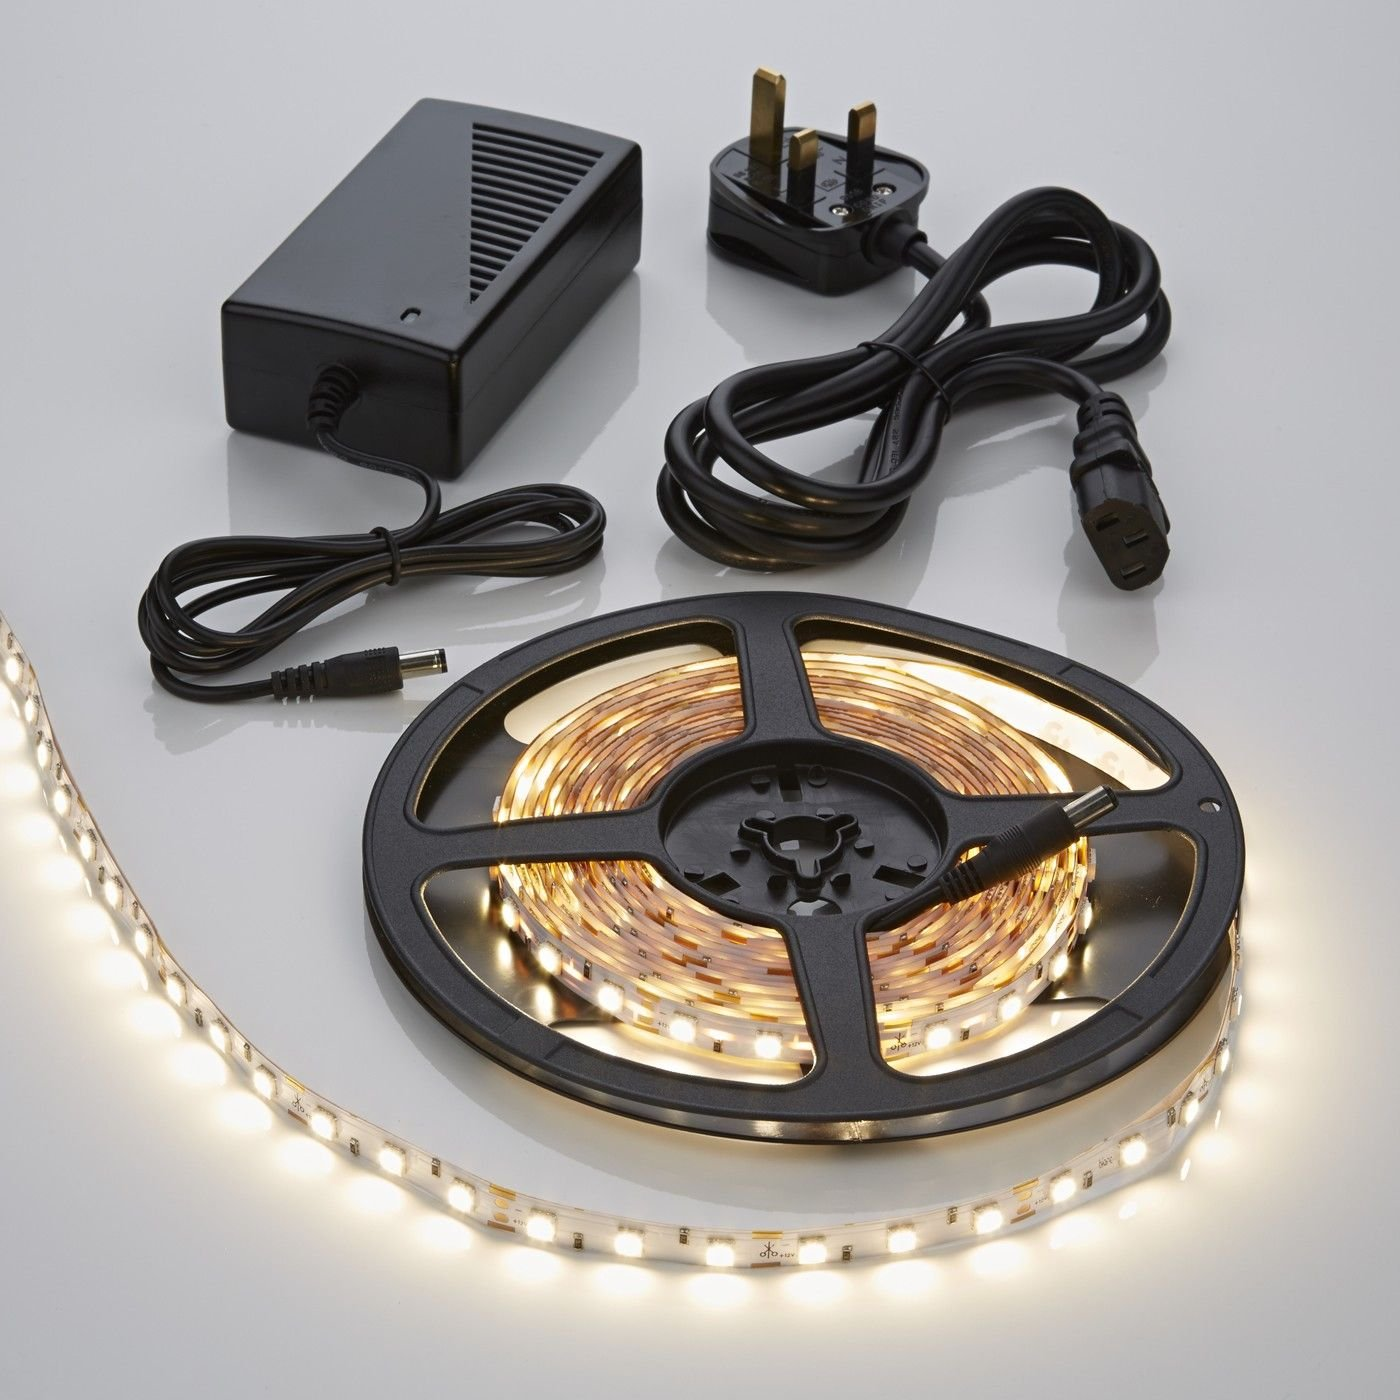 Warm White LED Strip with Power Supply and Plug 5 Meter Waterproof IP65 3M Tape Tento Lighting